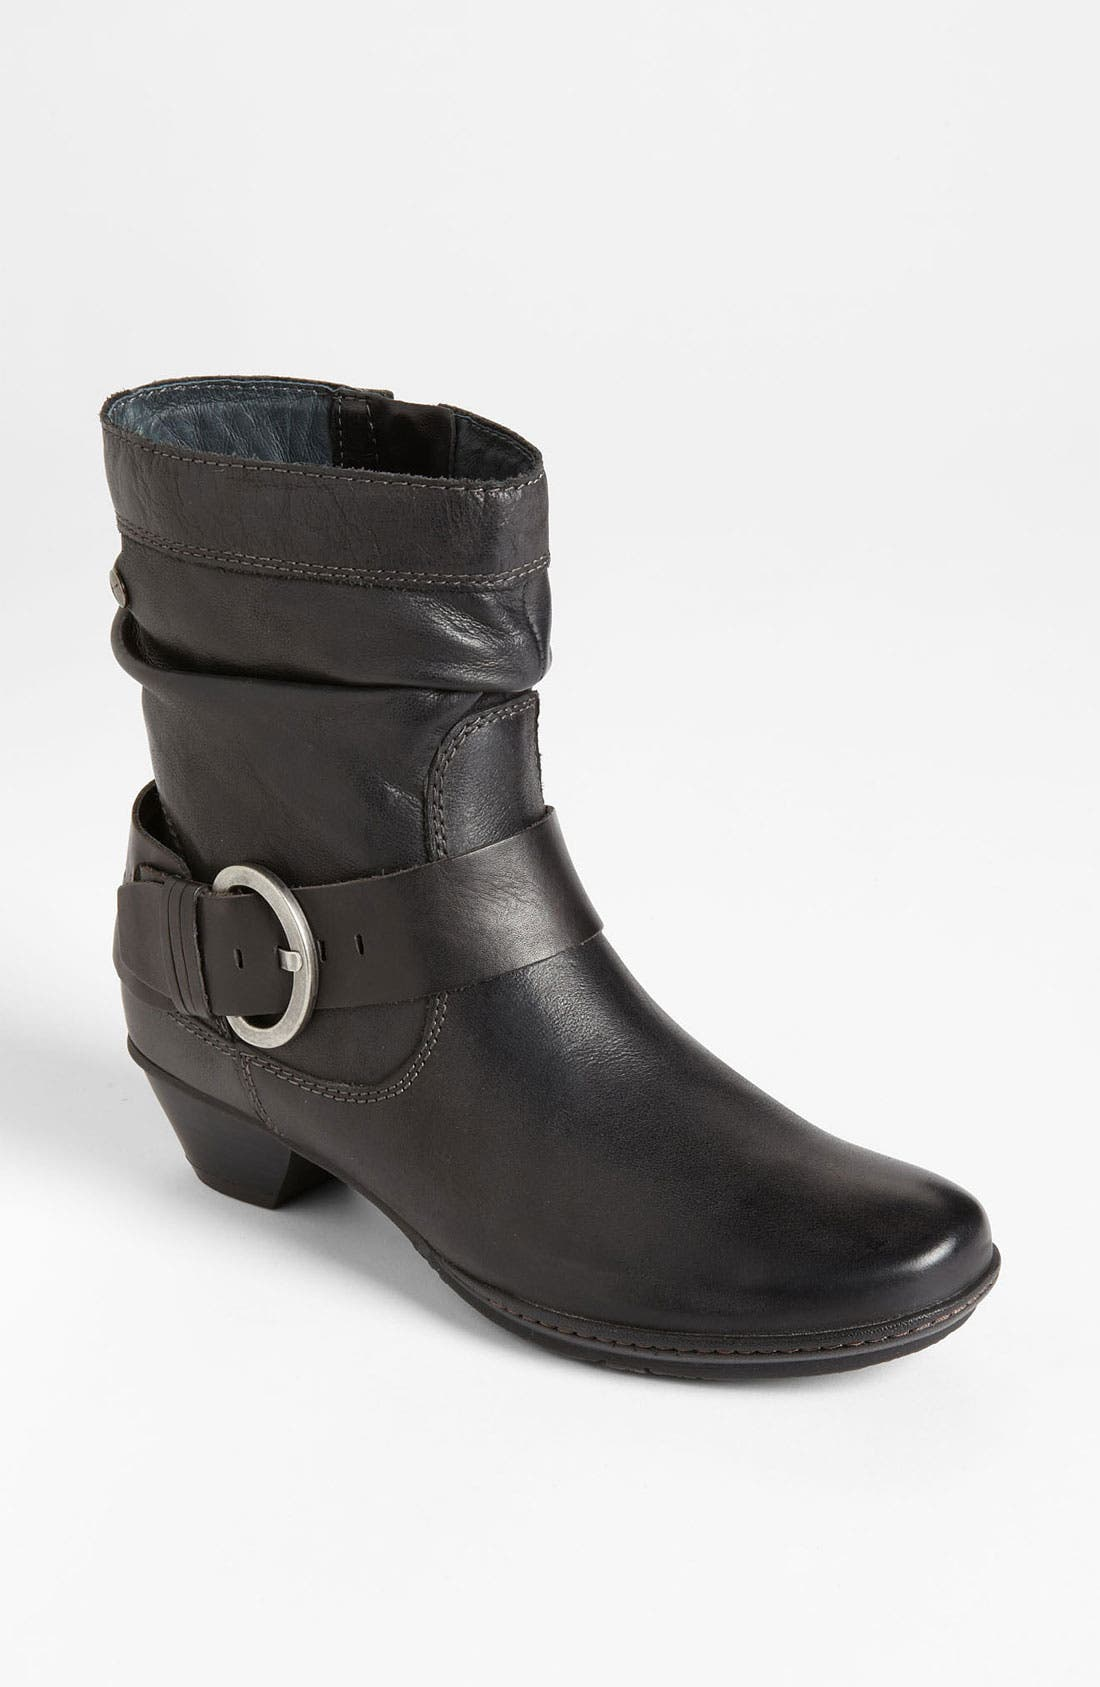 PIKOLINOS 'Brujas' Ankle Boot